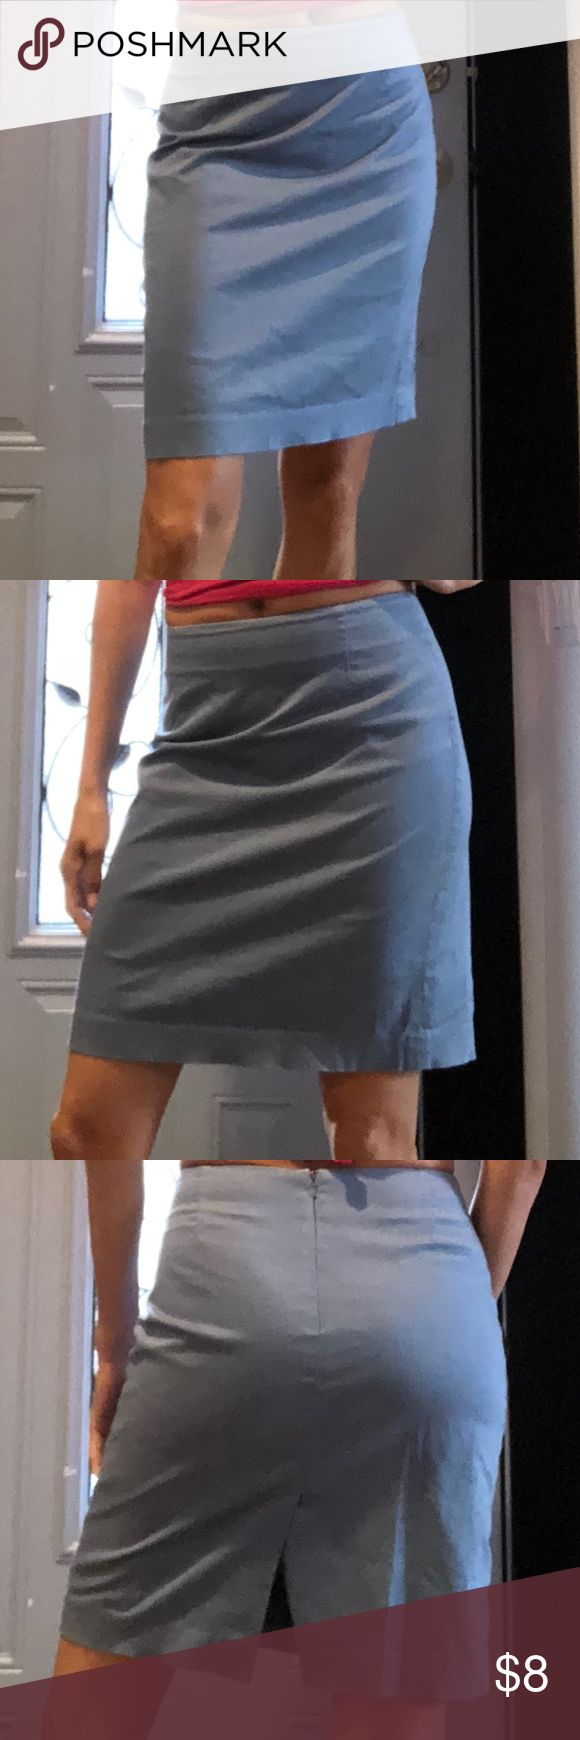 GUC GAP Stretch skirt GUC Gap Stretch skirt zipper back 98% cotton 2% Lycra Spandex 100% polyester lining Made in India Always dry cleaned comes from smoke & pet free home Gap Skirts Pencil